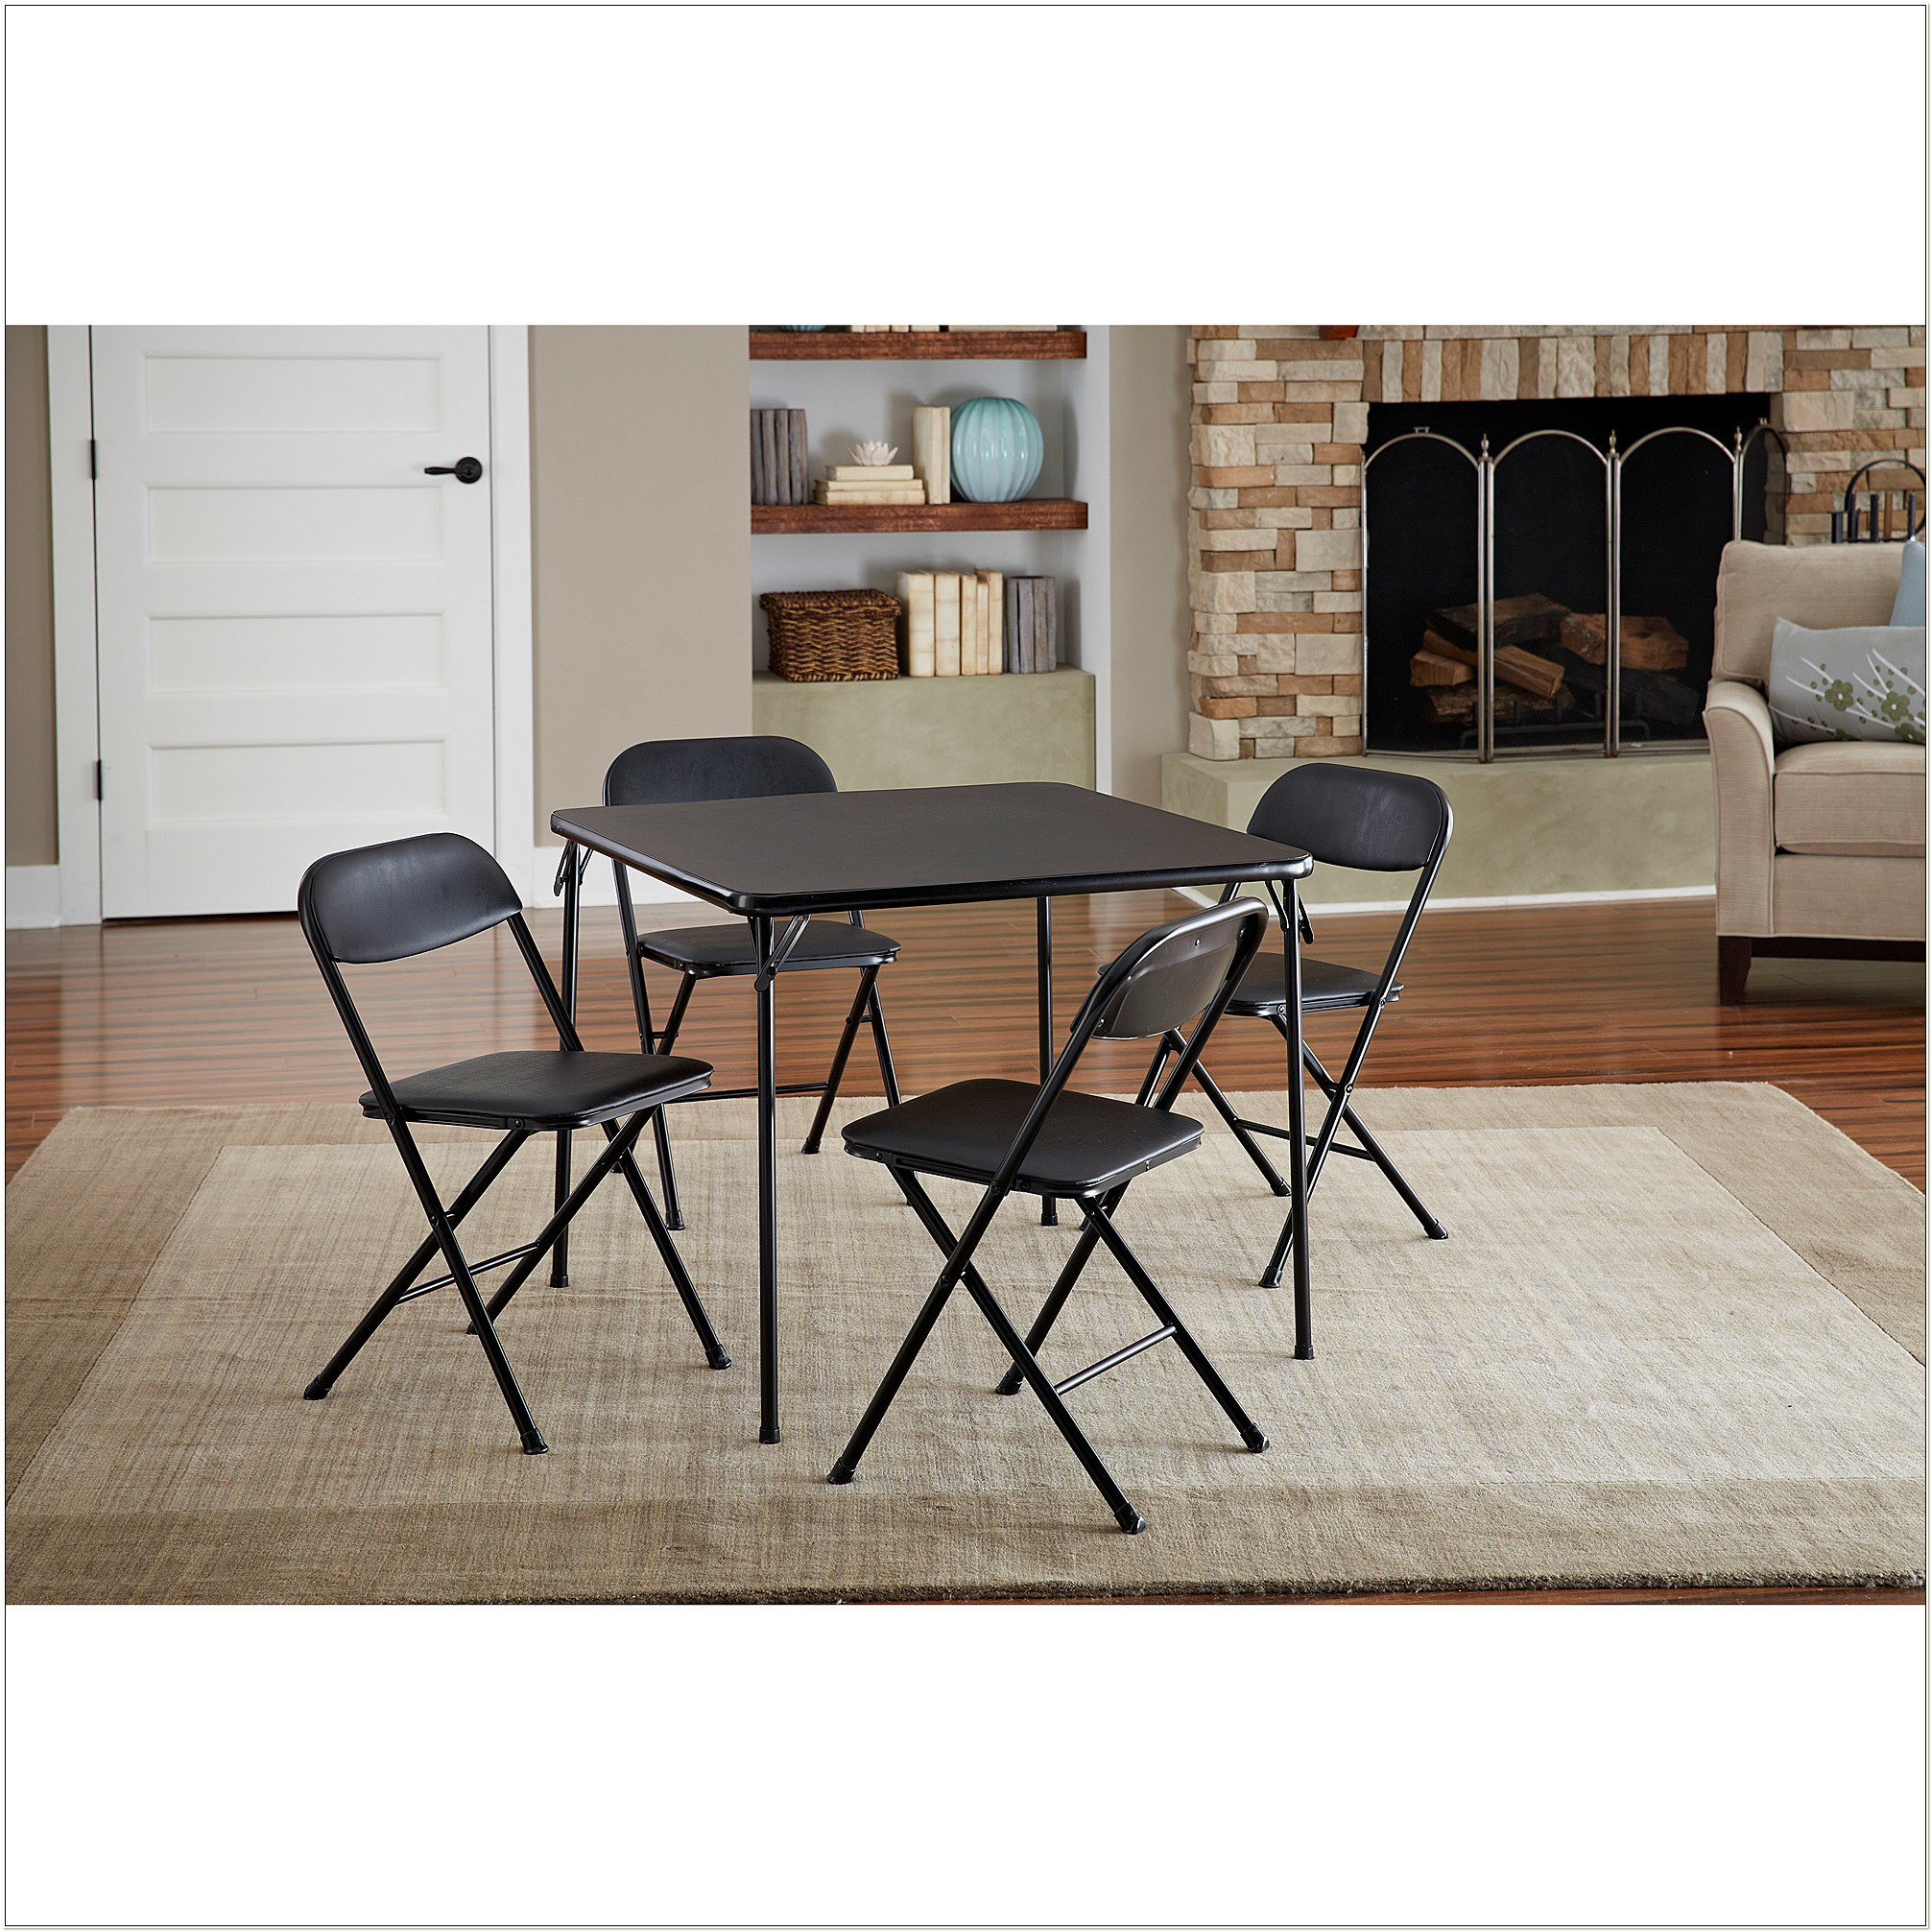 Cosco Bridge Table And Chairs